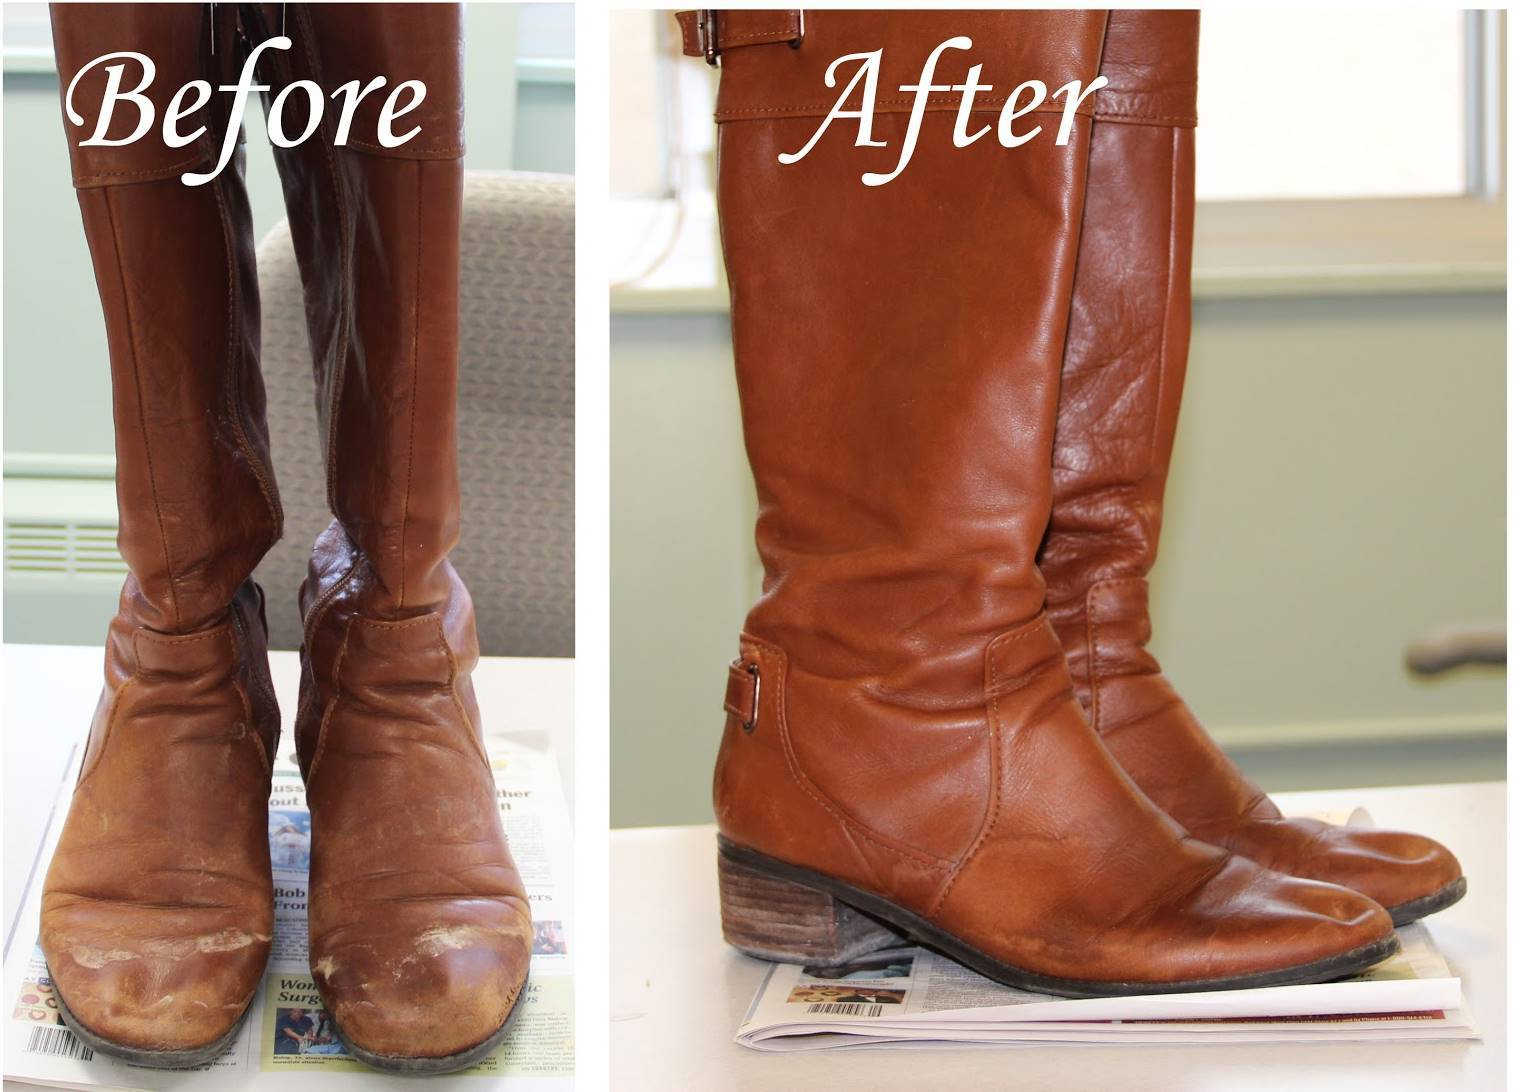 35+ Useful Clothing Hacks Every Woman Should Know --> How to remove salt stains from leather boots